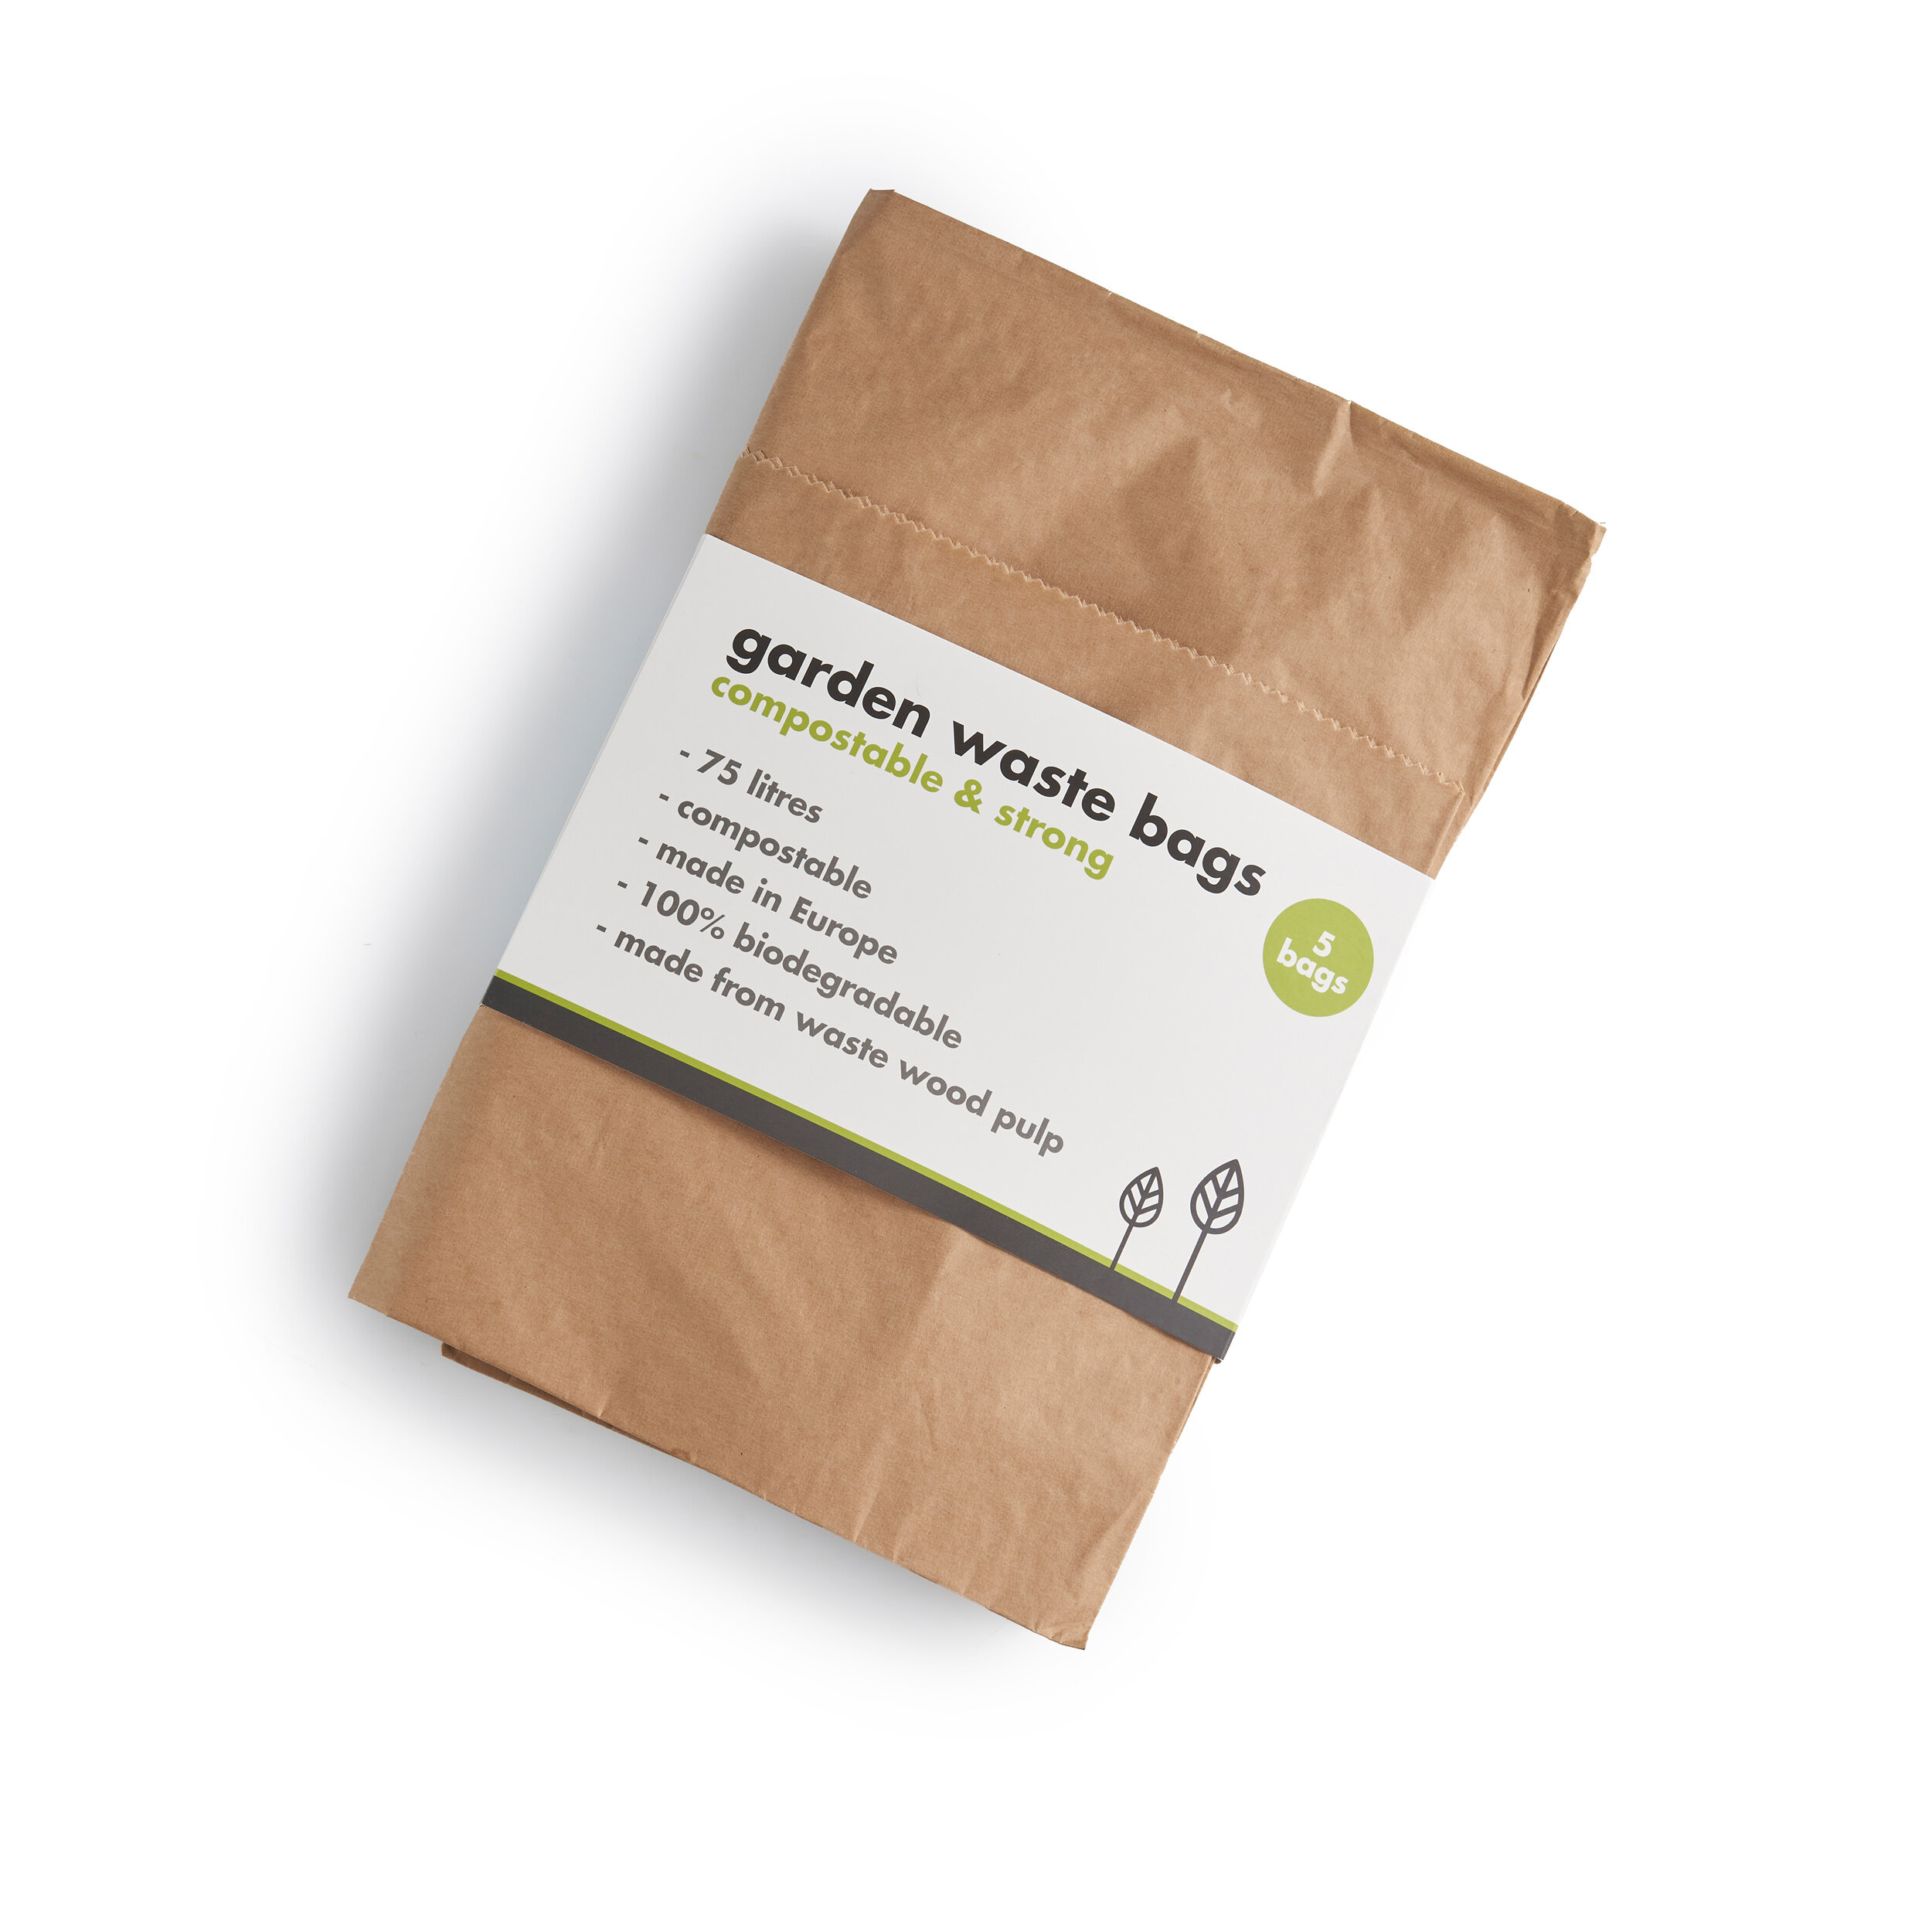 EcoSack 75L Bags with Composting Guide 75 Litre x 40 Paper Garden Waste Sacks Compostable /& Biodegradable Liners